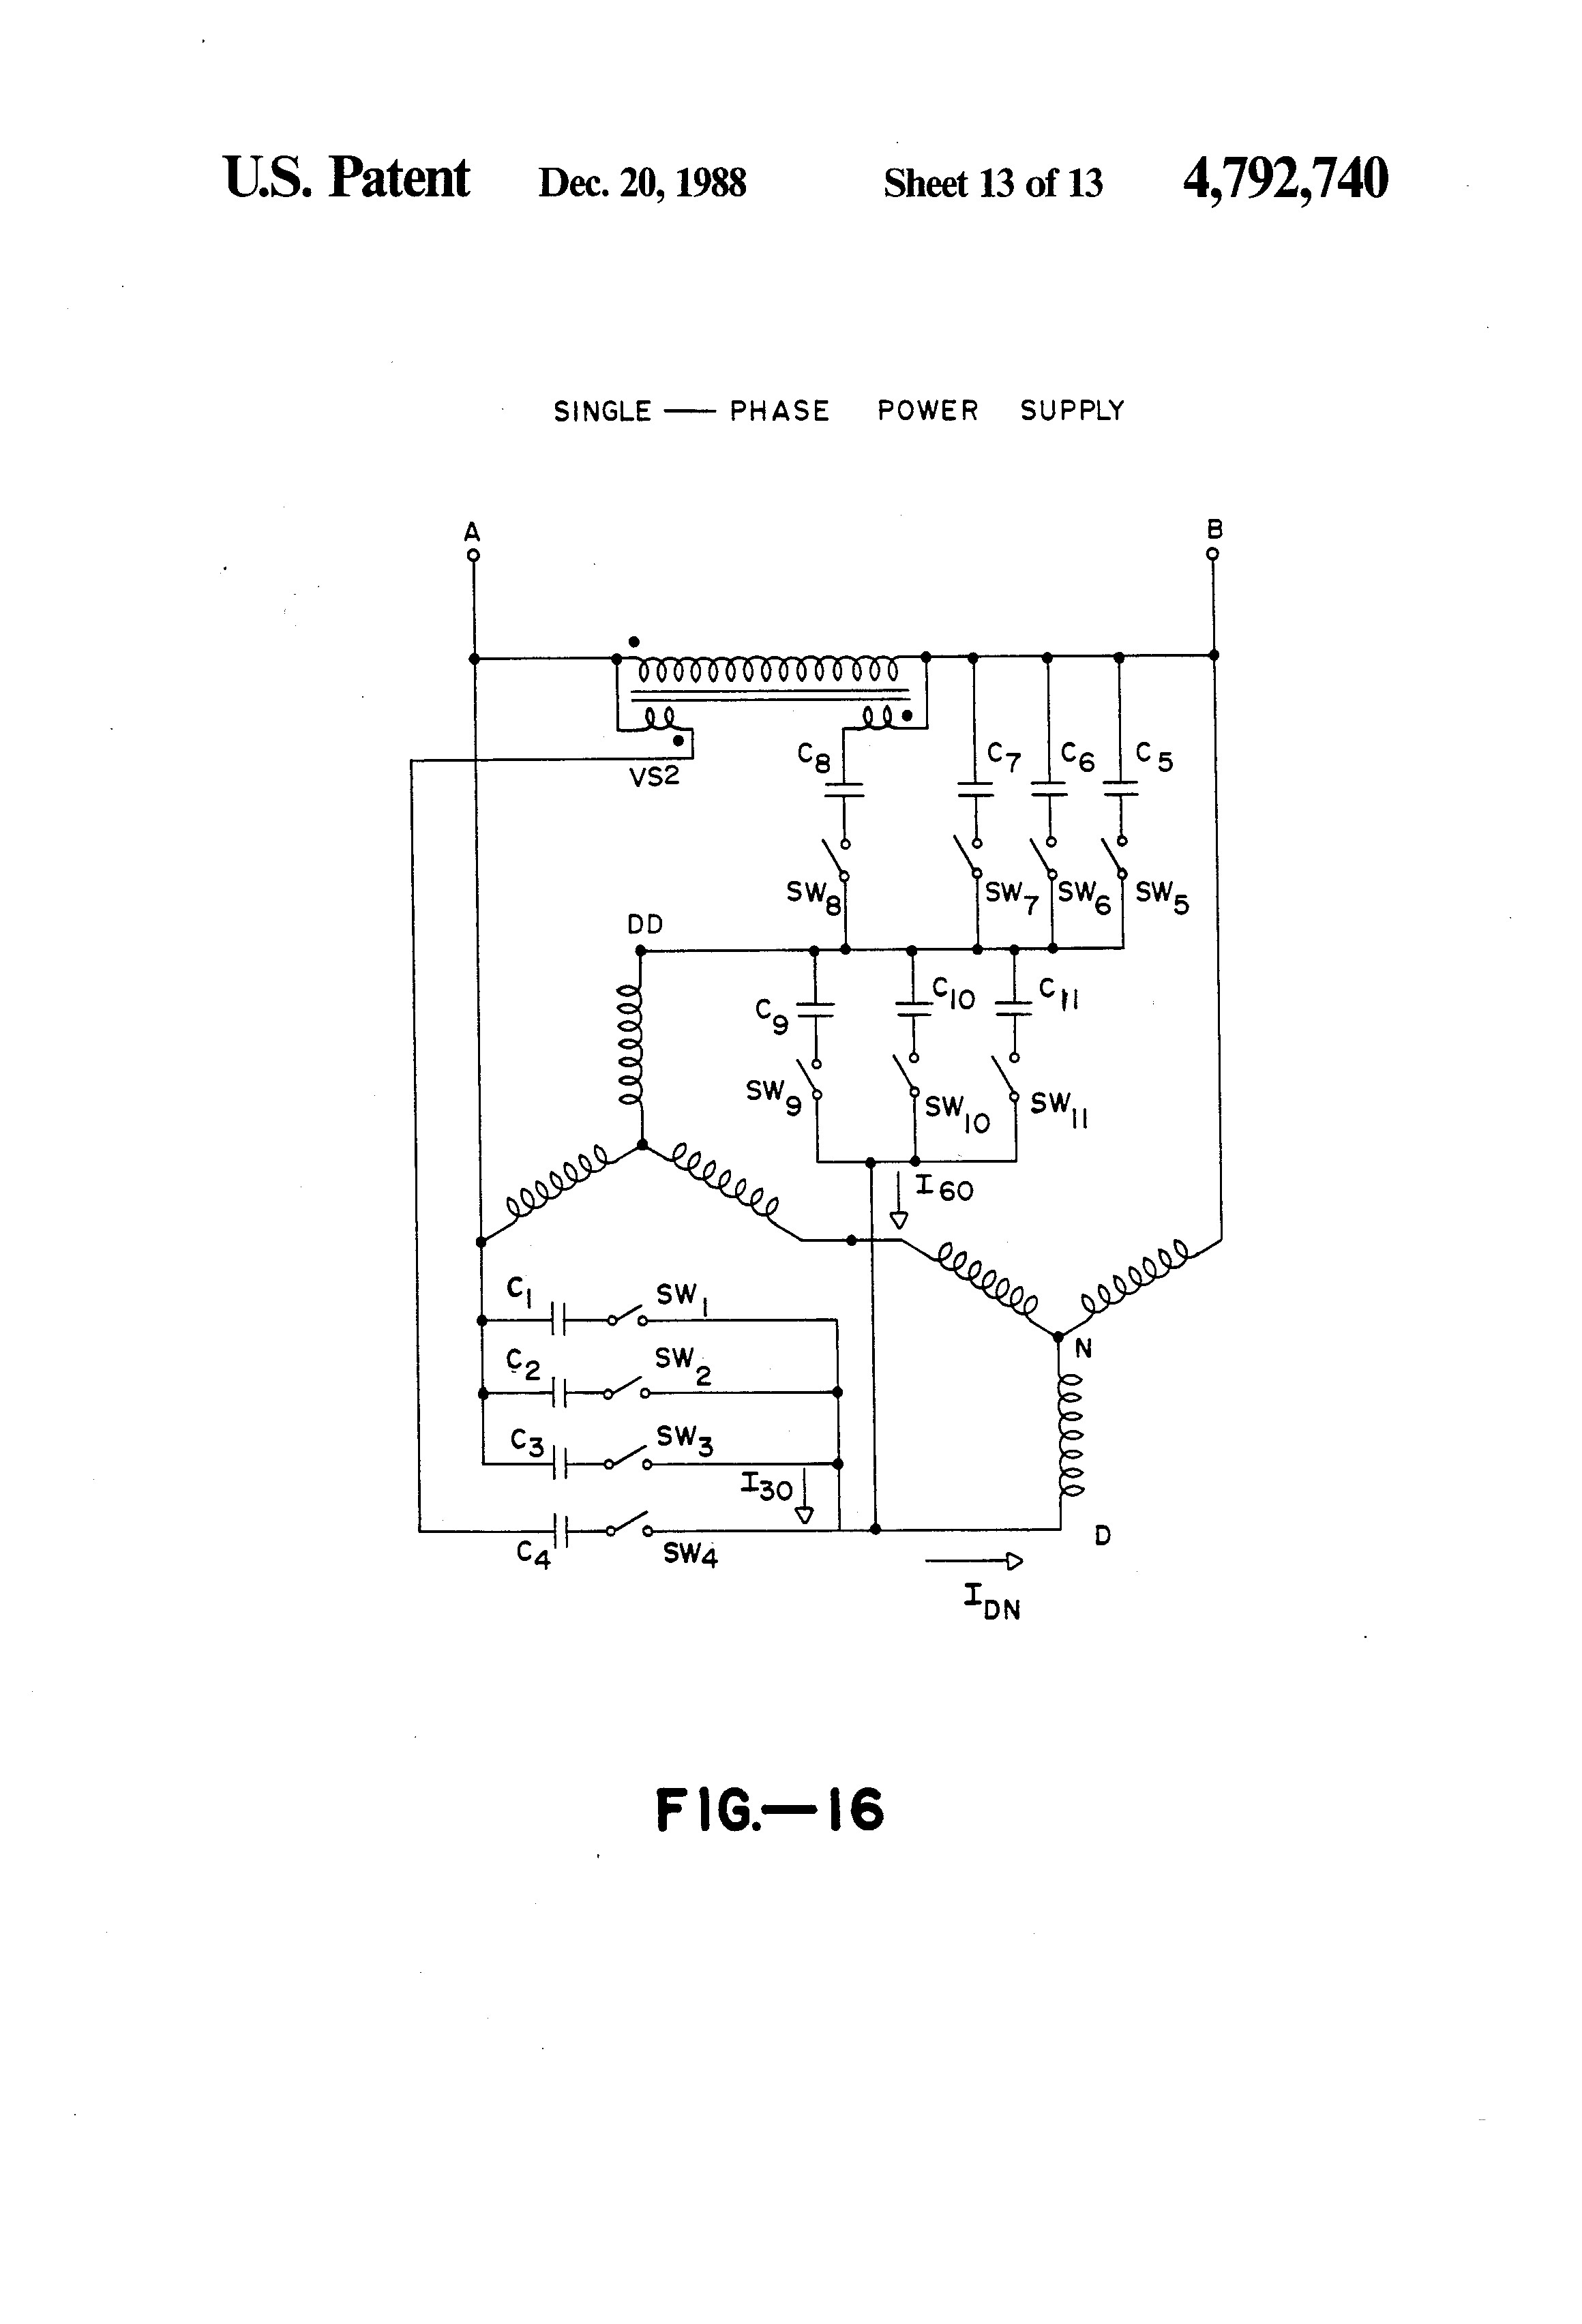 Ronk Phase Converter Wiring Diagram 3 Related Post